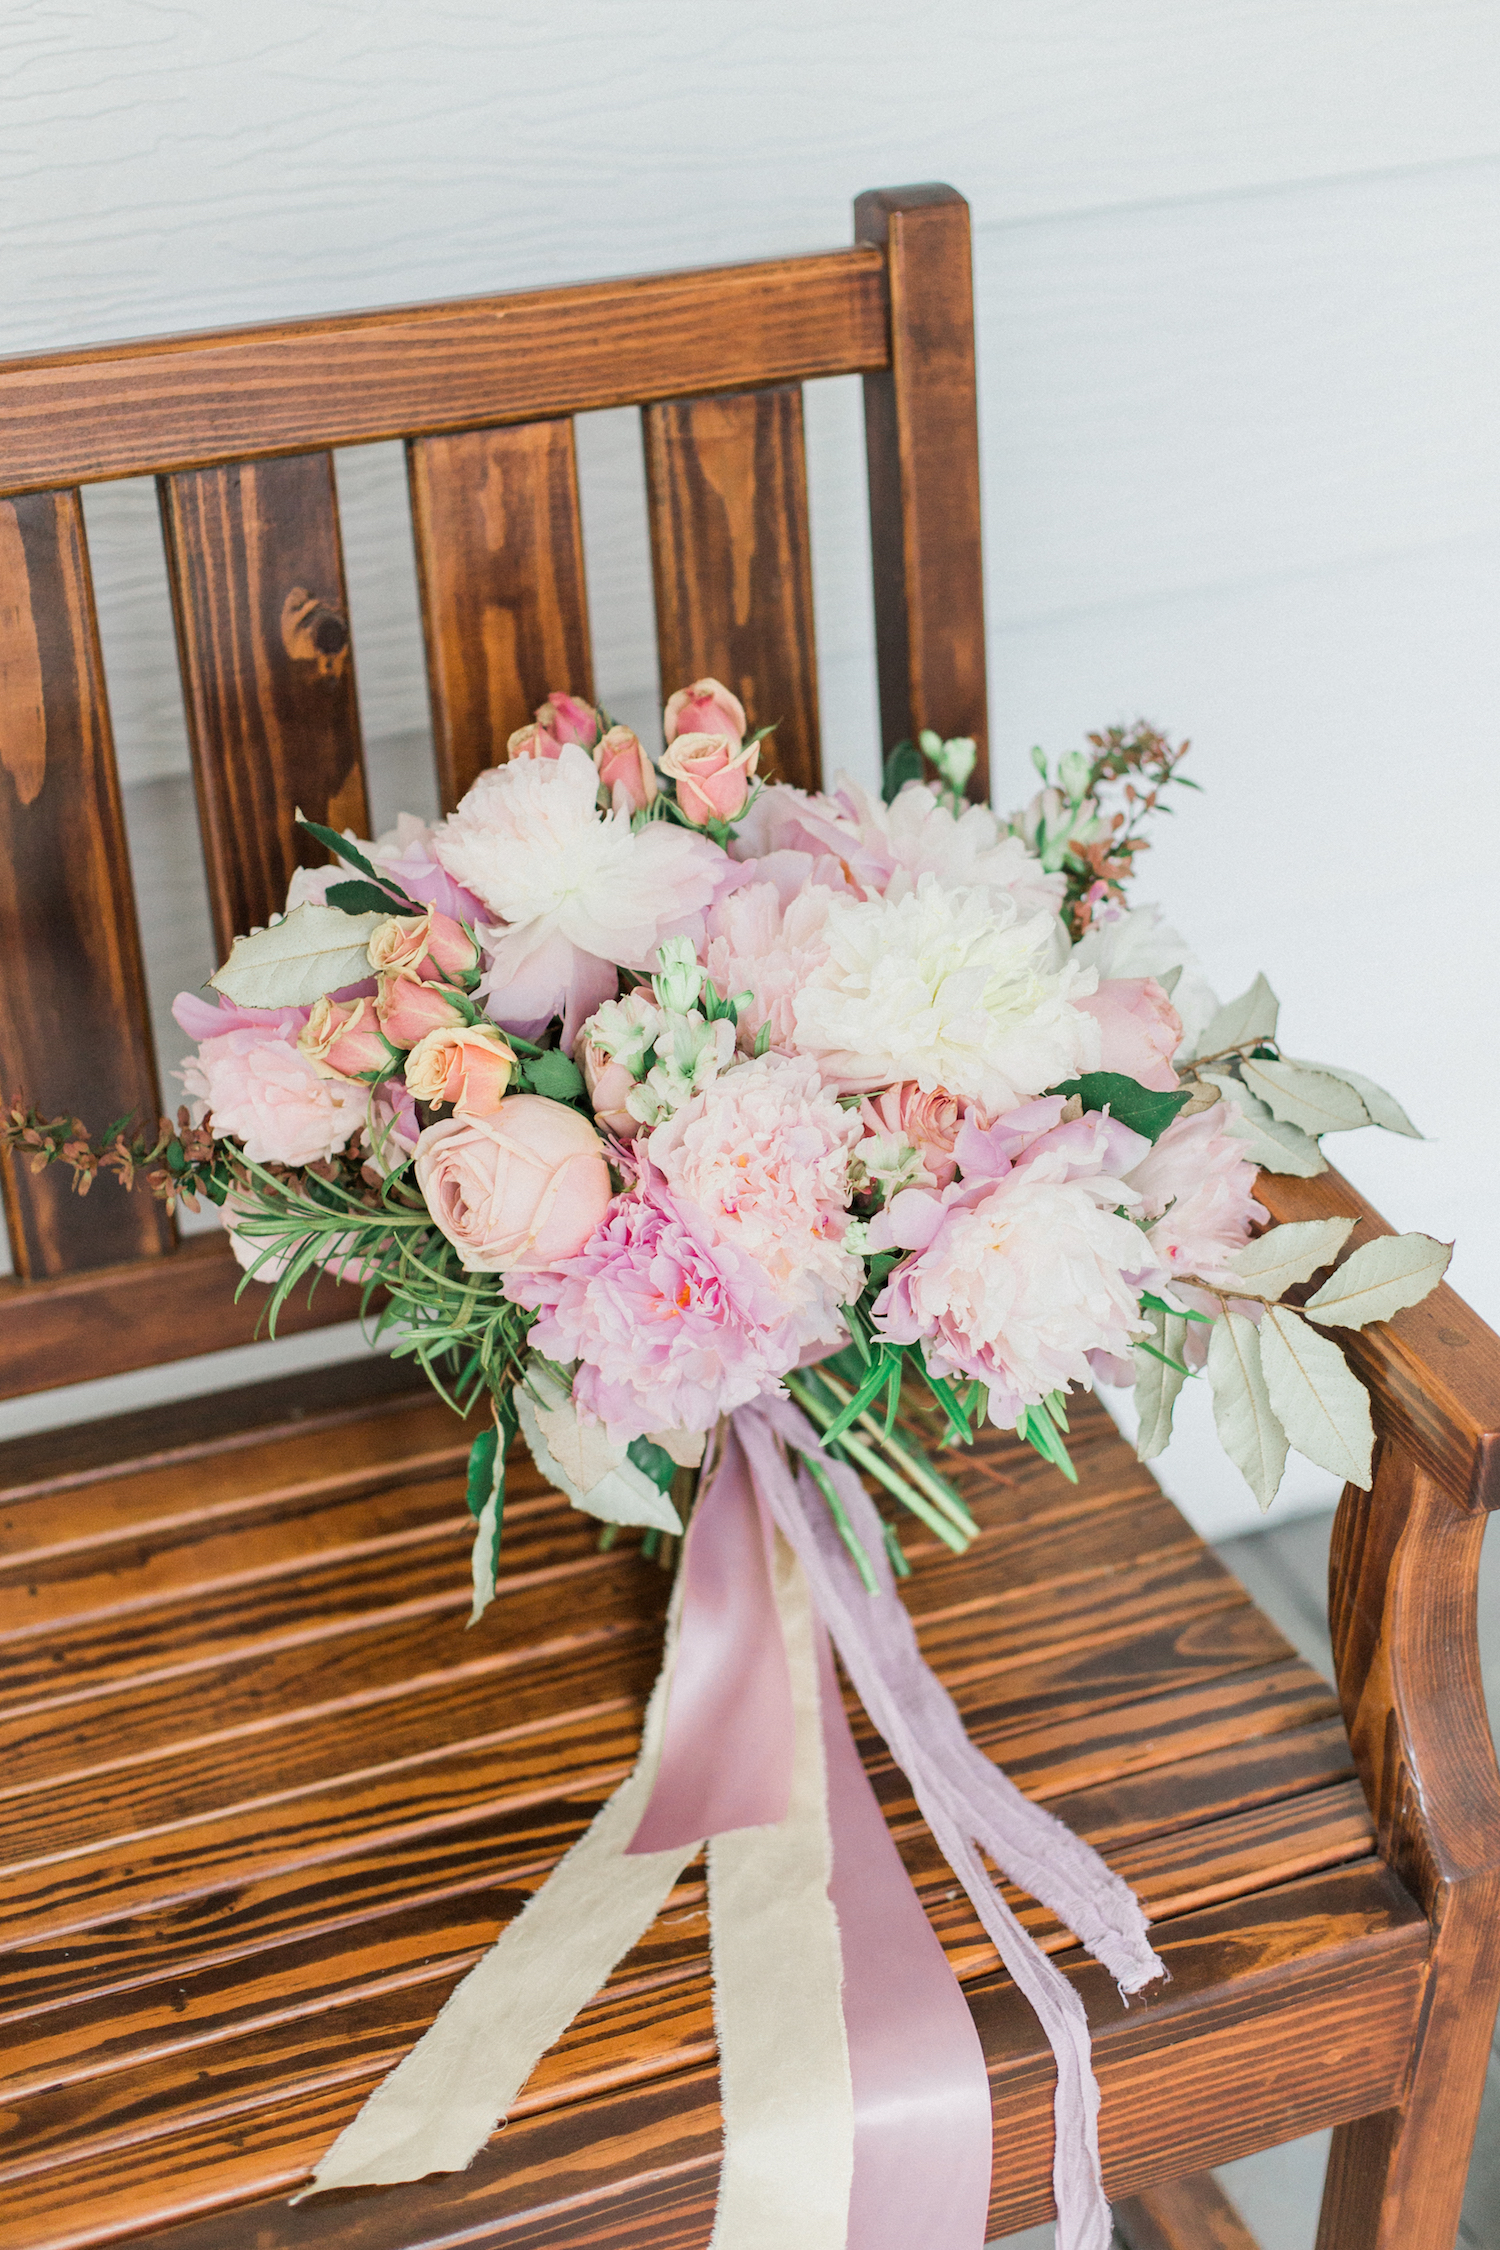 Pink mauve and blush wedding bouquet with peonies roses and greenery with silk ribbon.